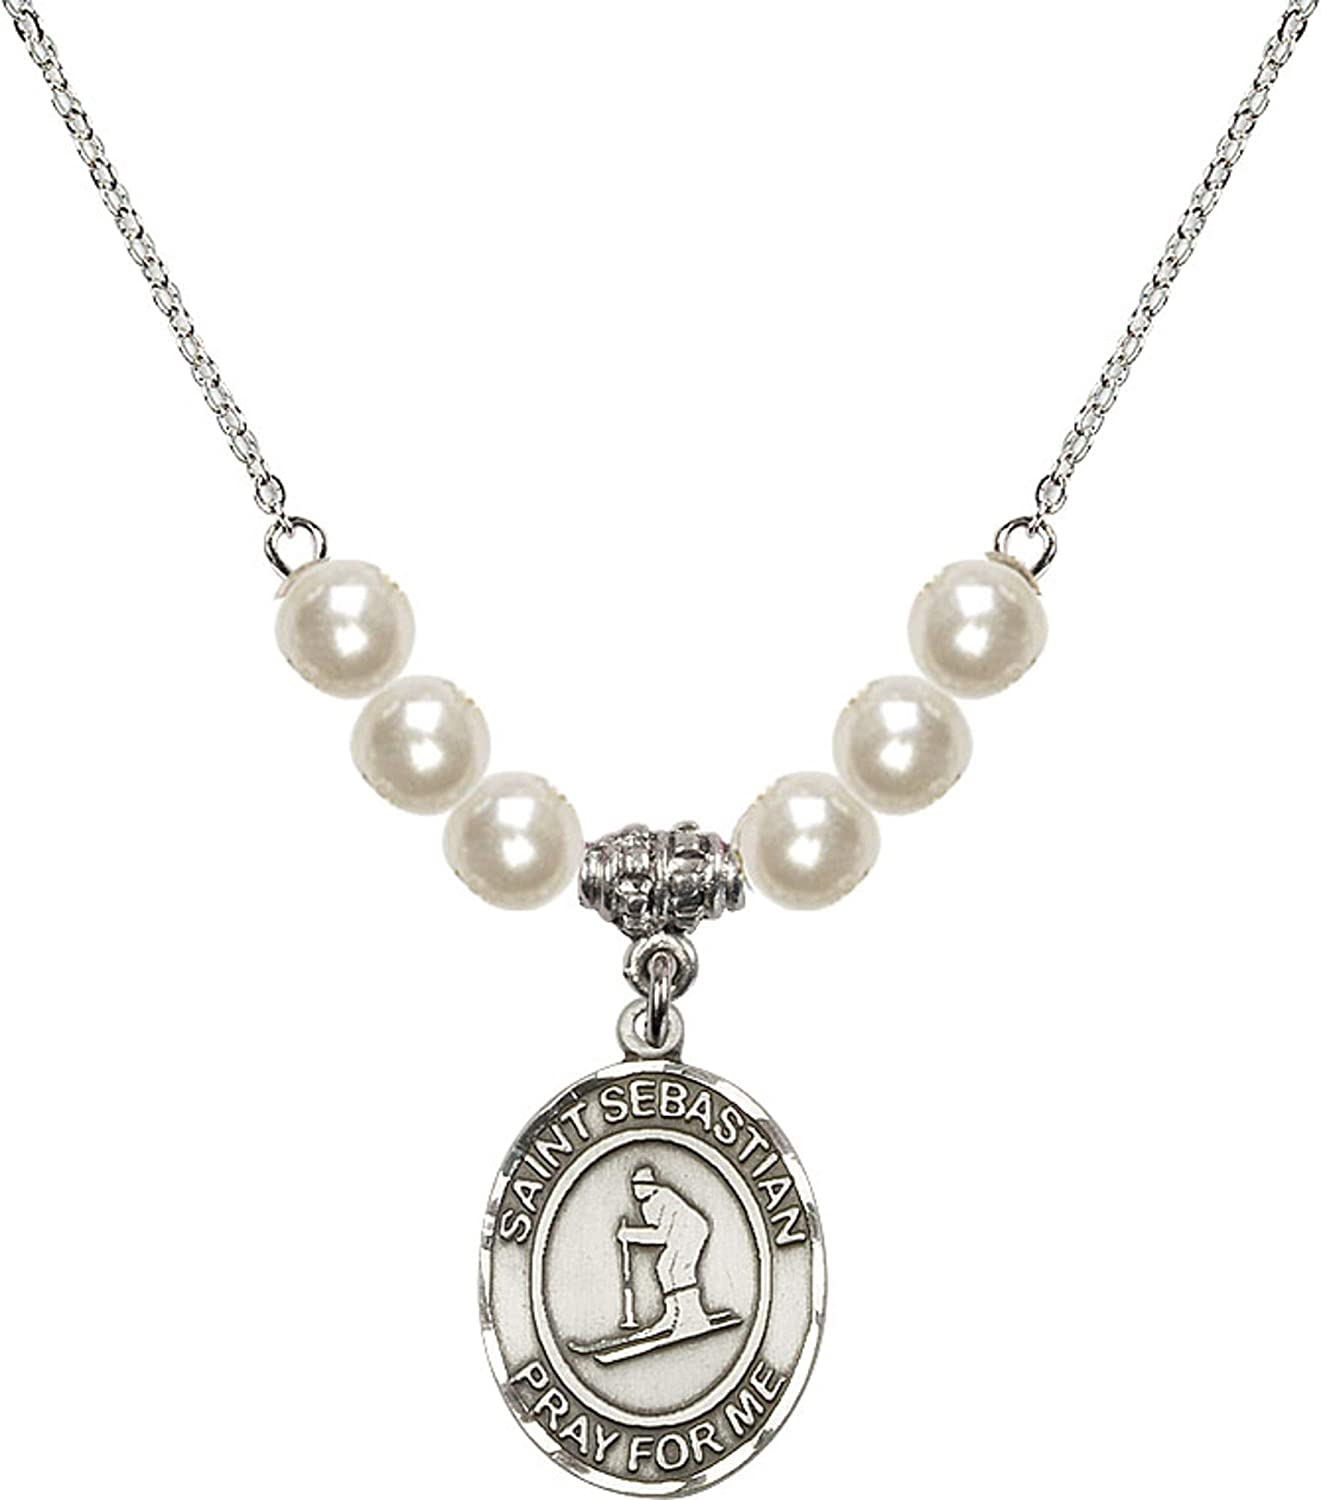 Bonyak Jewelry 18 Inch Rhodium Plated Necklace w// 6mm Faux-Pearl Beads and Saint Sebastian//Skiing Charm